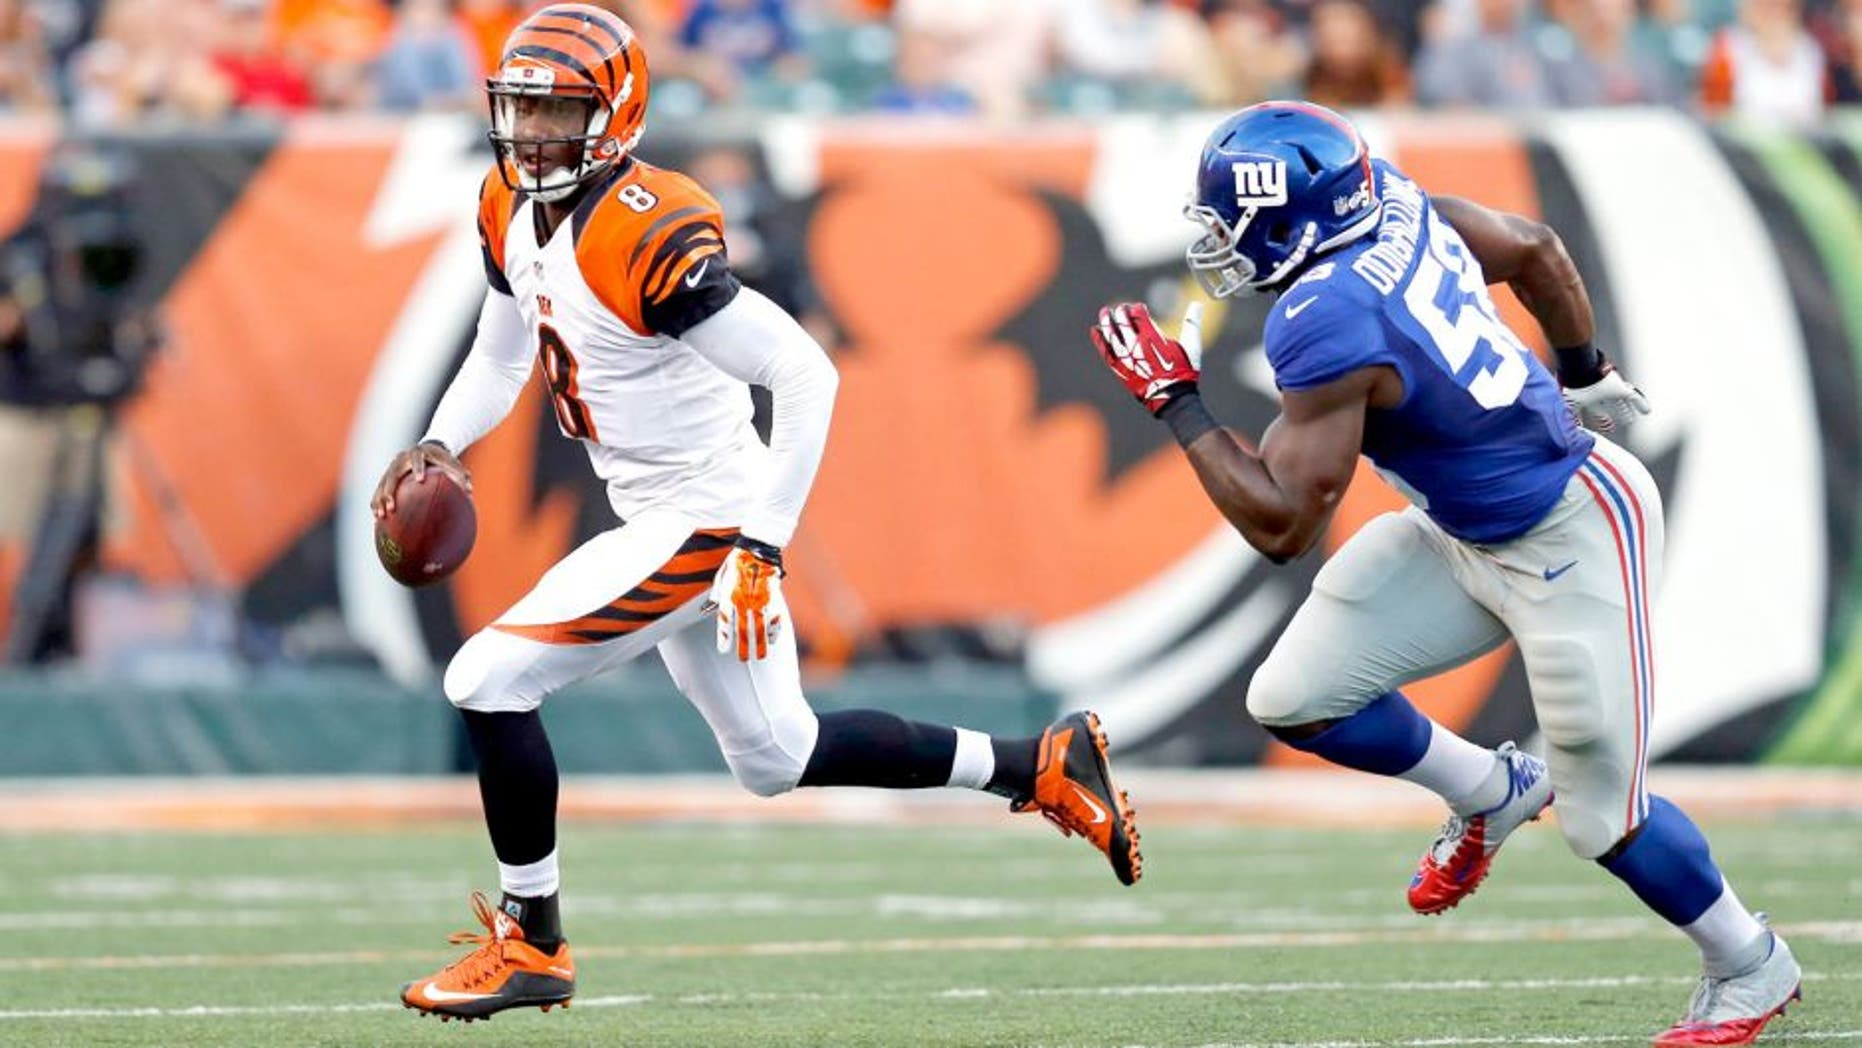 New York Giants defensive end Owamagbe Odighizuwa (58) chases Cincinnati Bengals quarterback Josh Johnson during the first half of an NFL preseason football game in Cincinnati, Friday, Aug. 14, 2015. (AP Photo/Gary Landers)